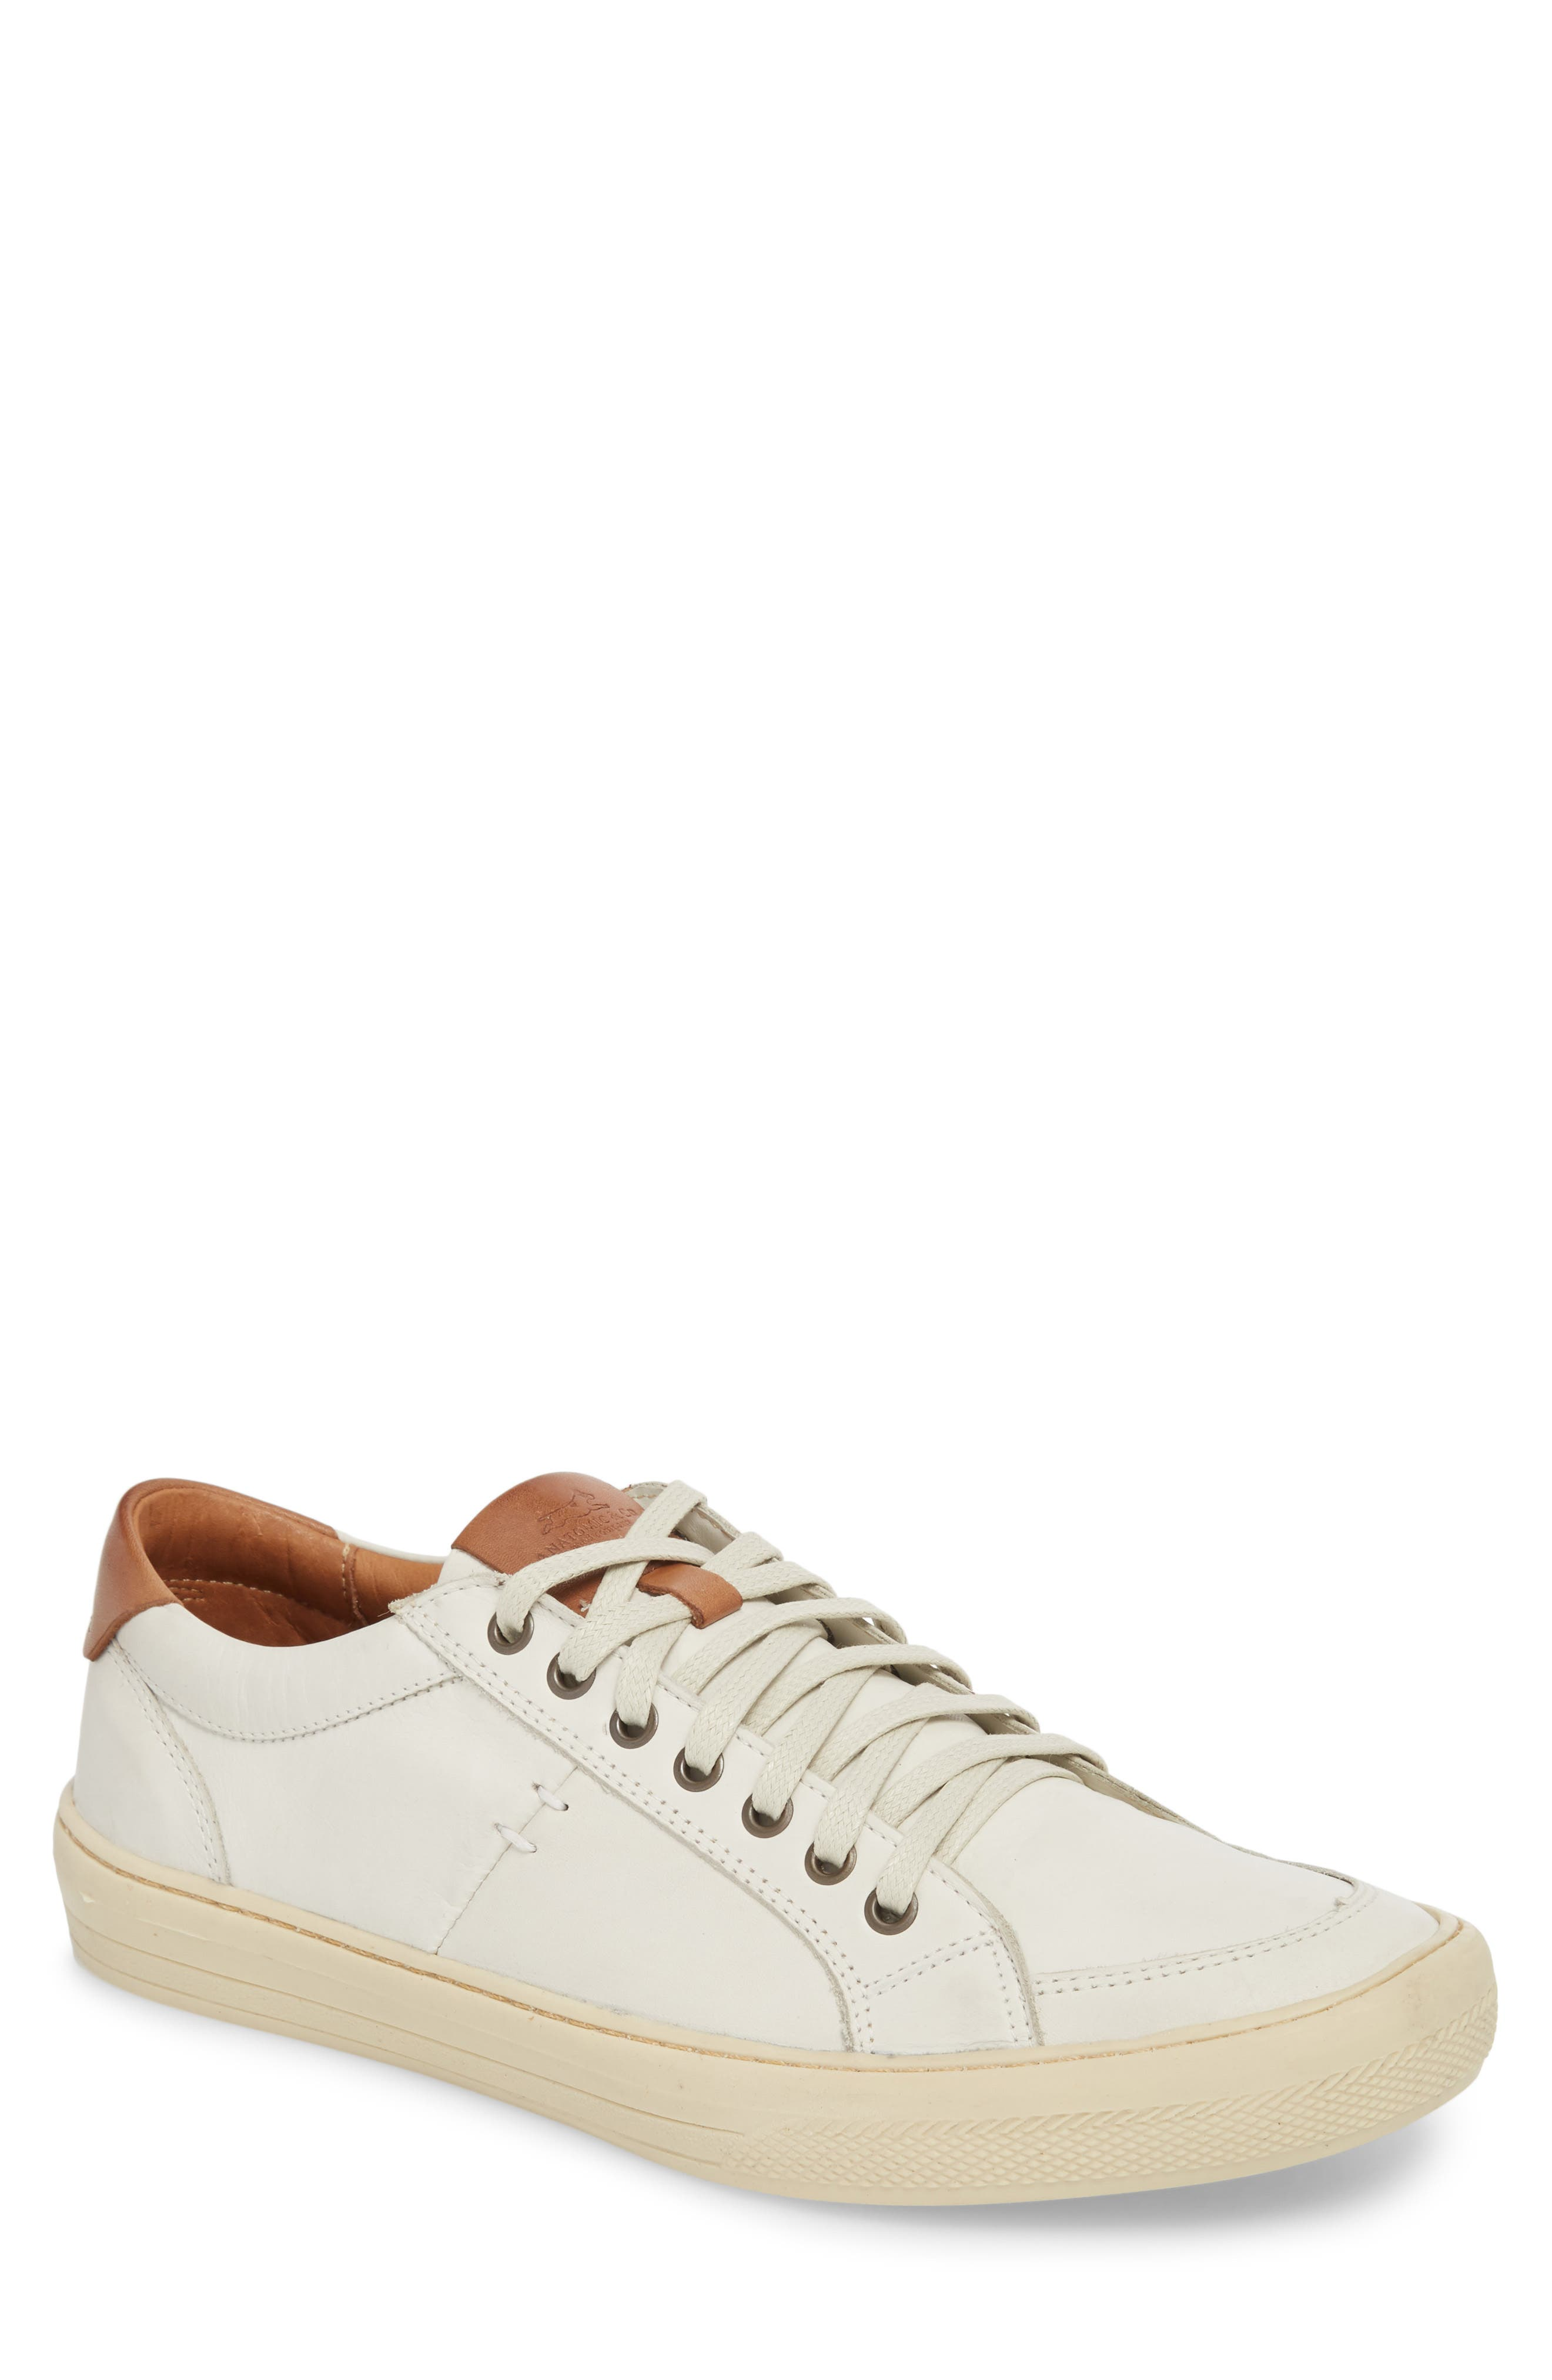 Bilac Low Top Sneaker,                         Main,                         color, 100